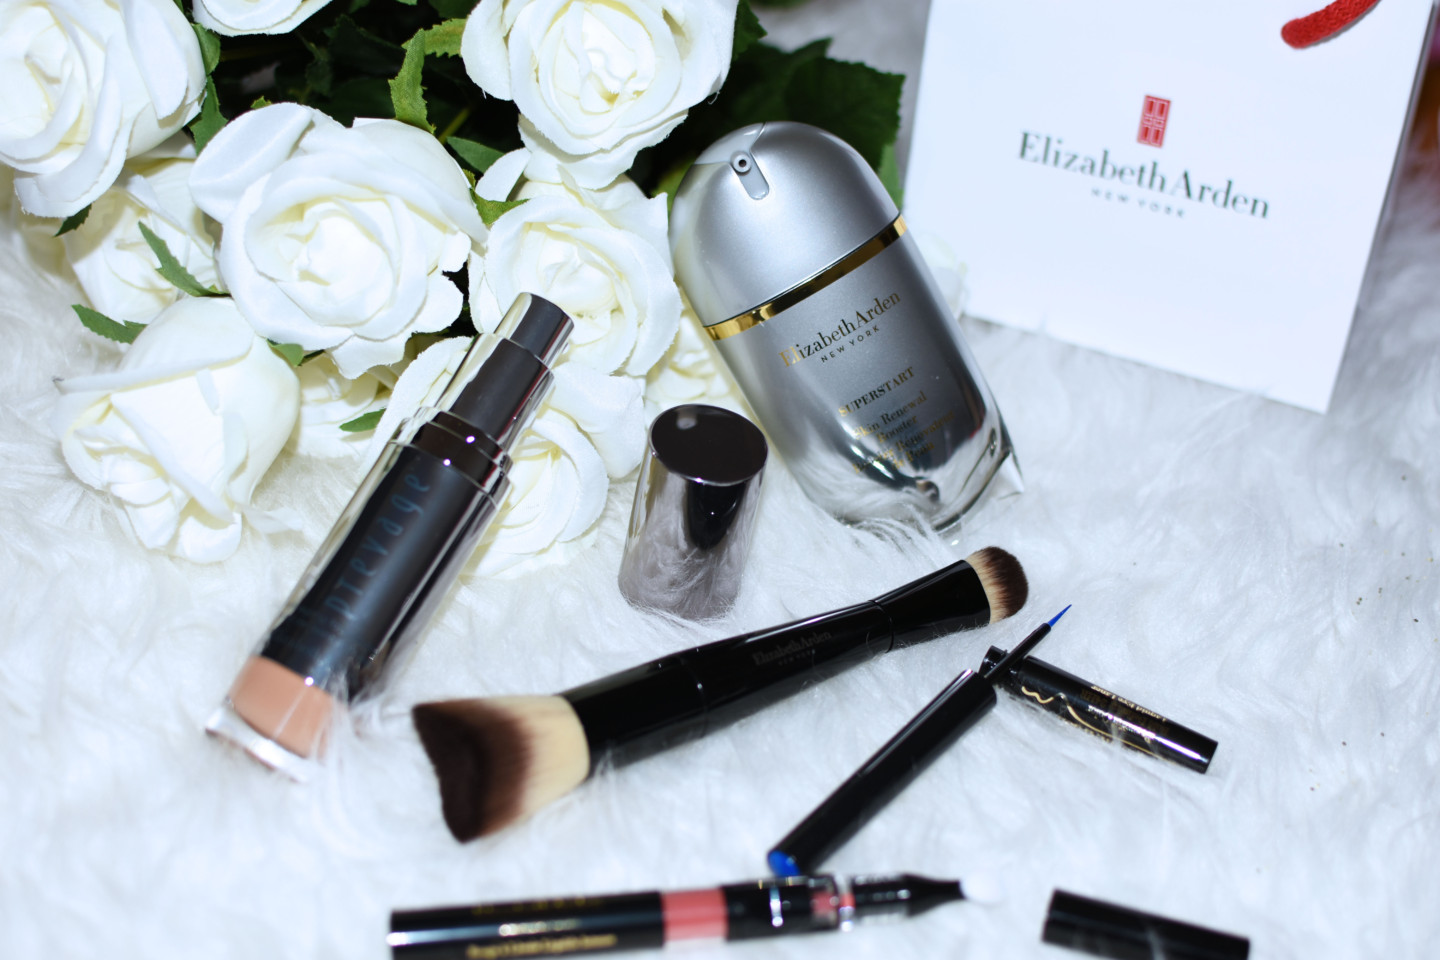 elizabeth-arden-collezione-2016-skincare-beauty-valentina-coco-fashion-blogger